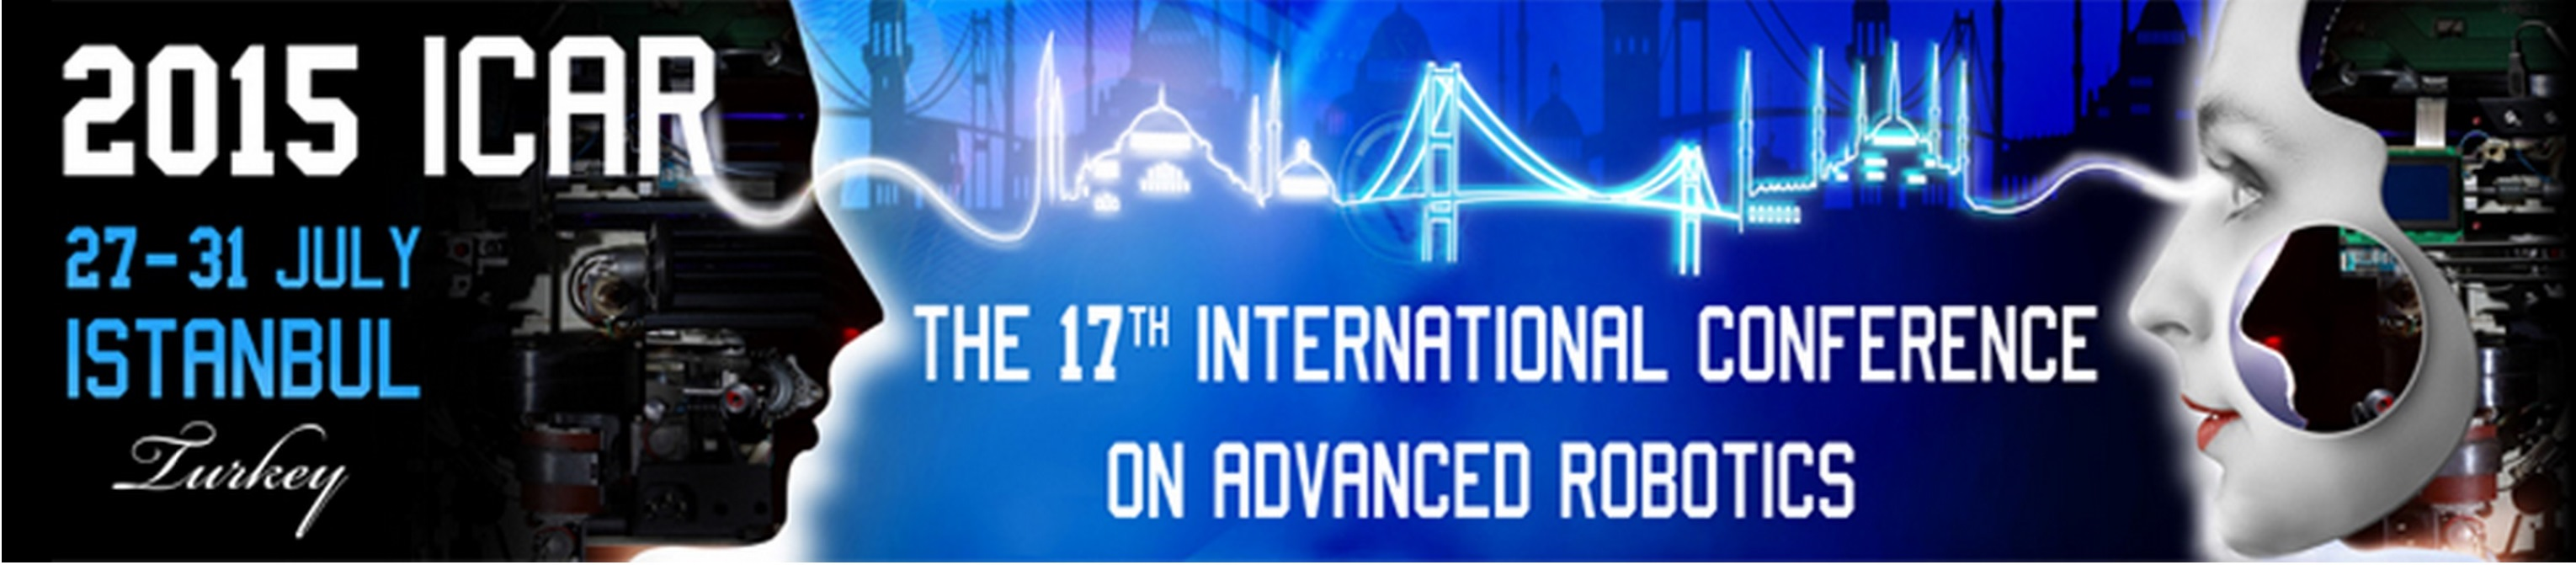 ICAR 2015 Workshop